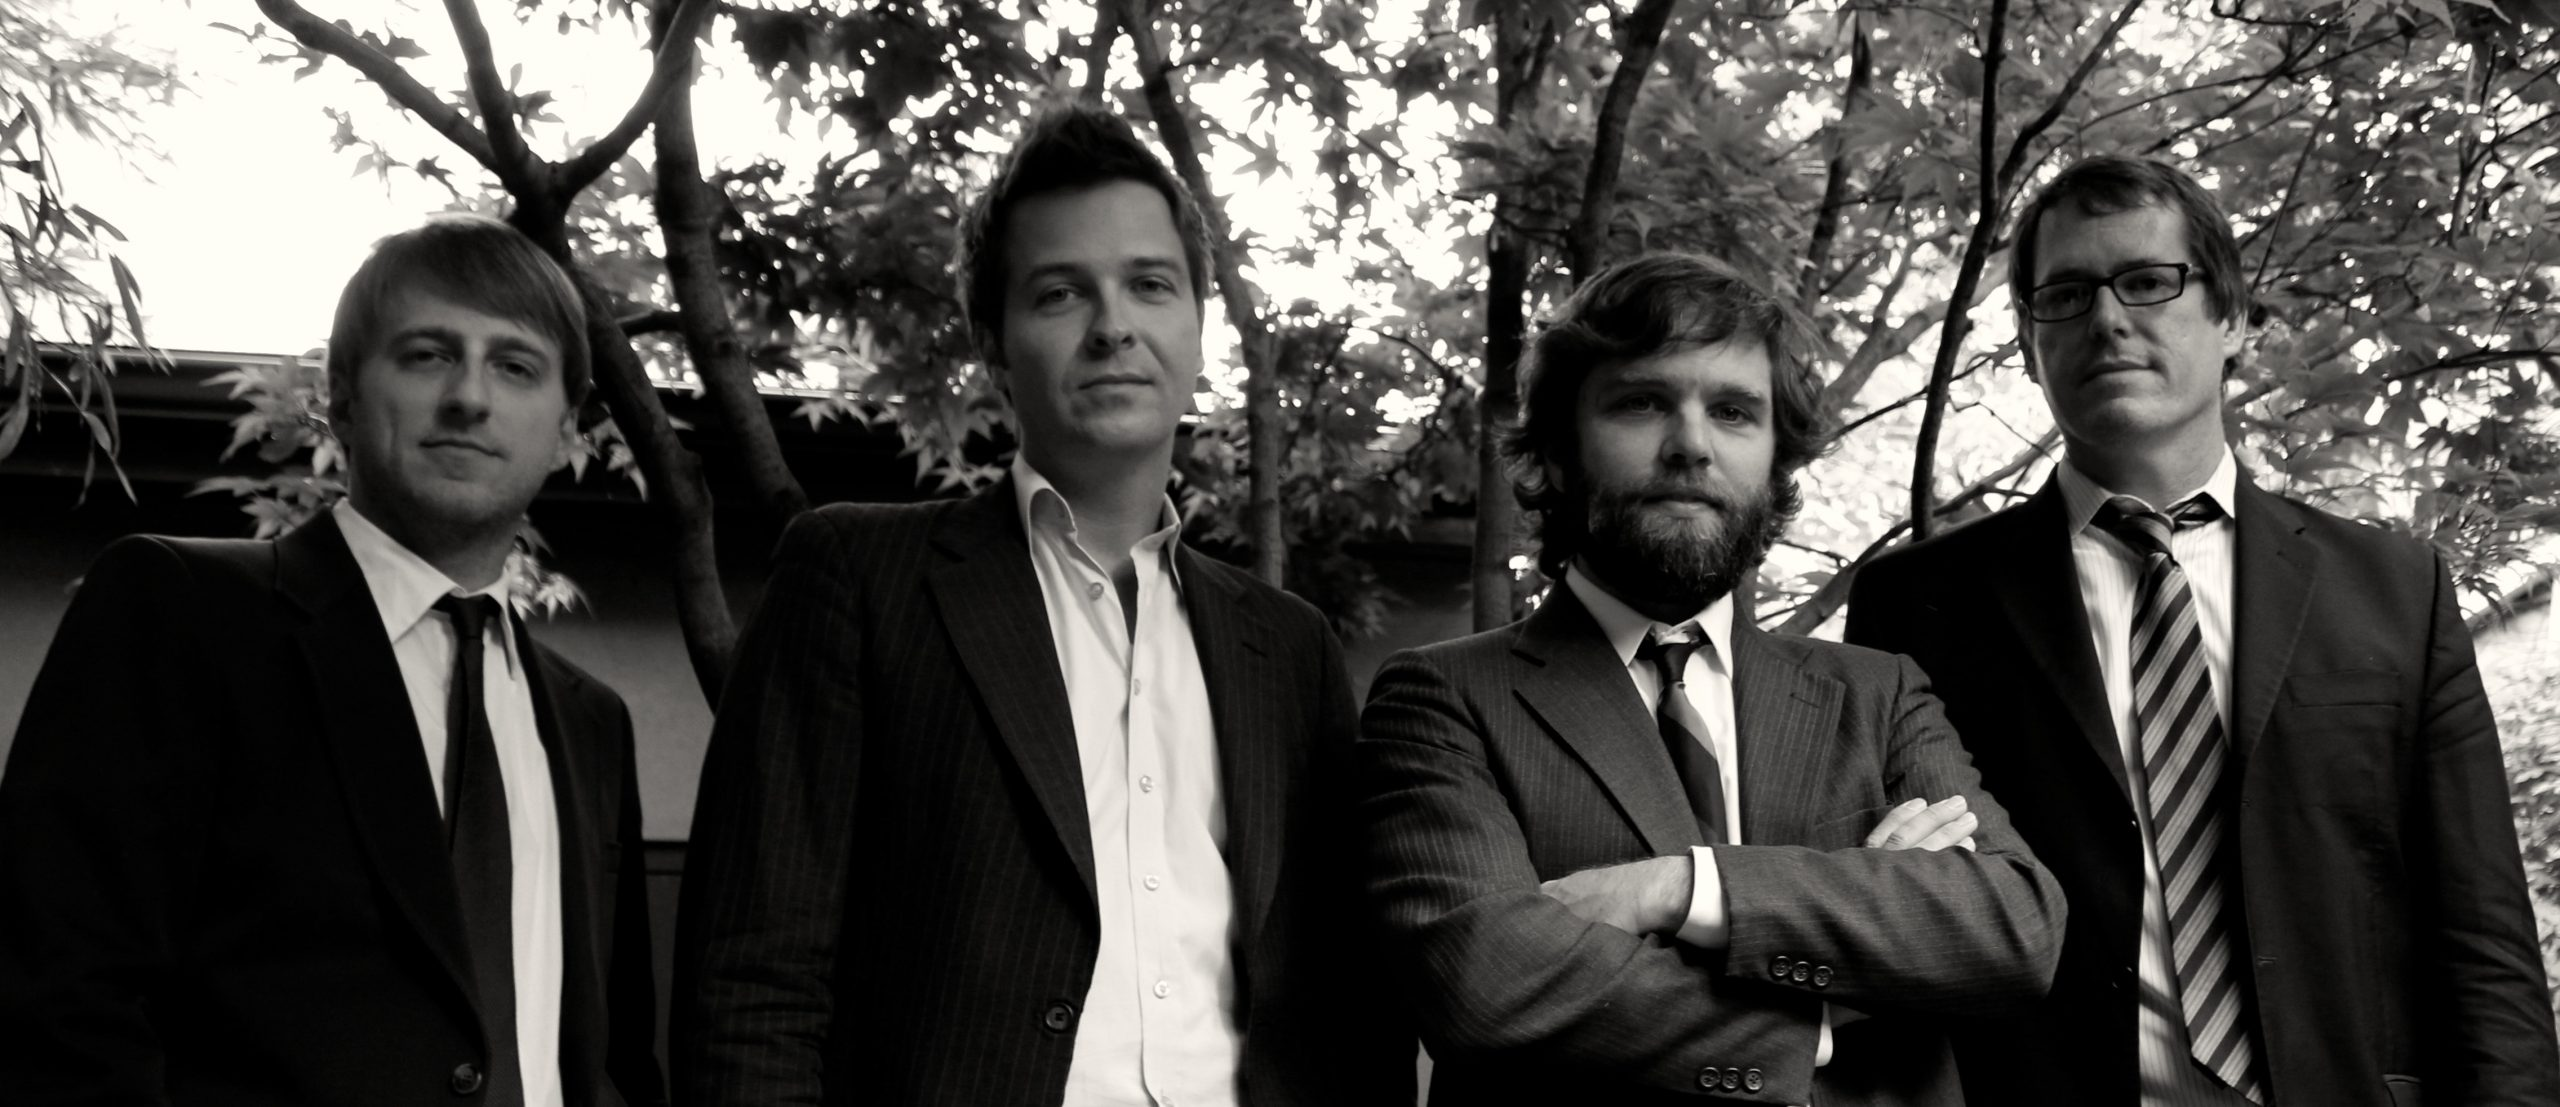 ARTIST OF THE MONTH: Chatham County Line